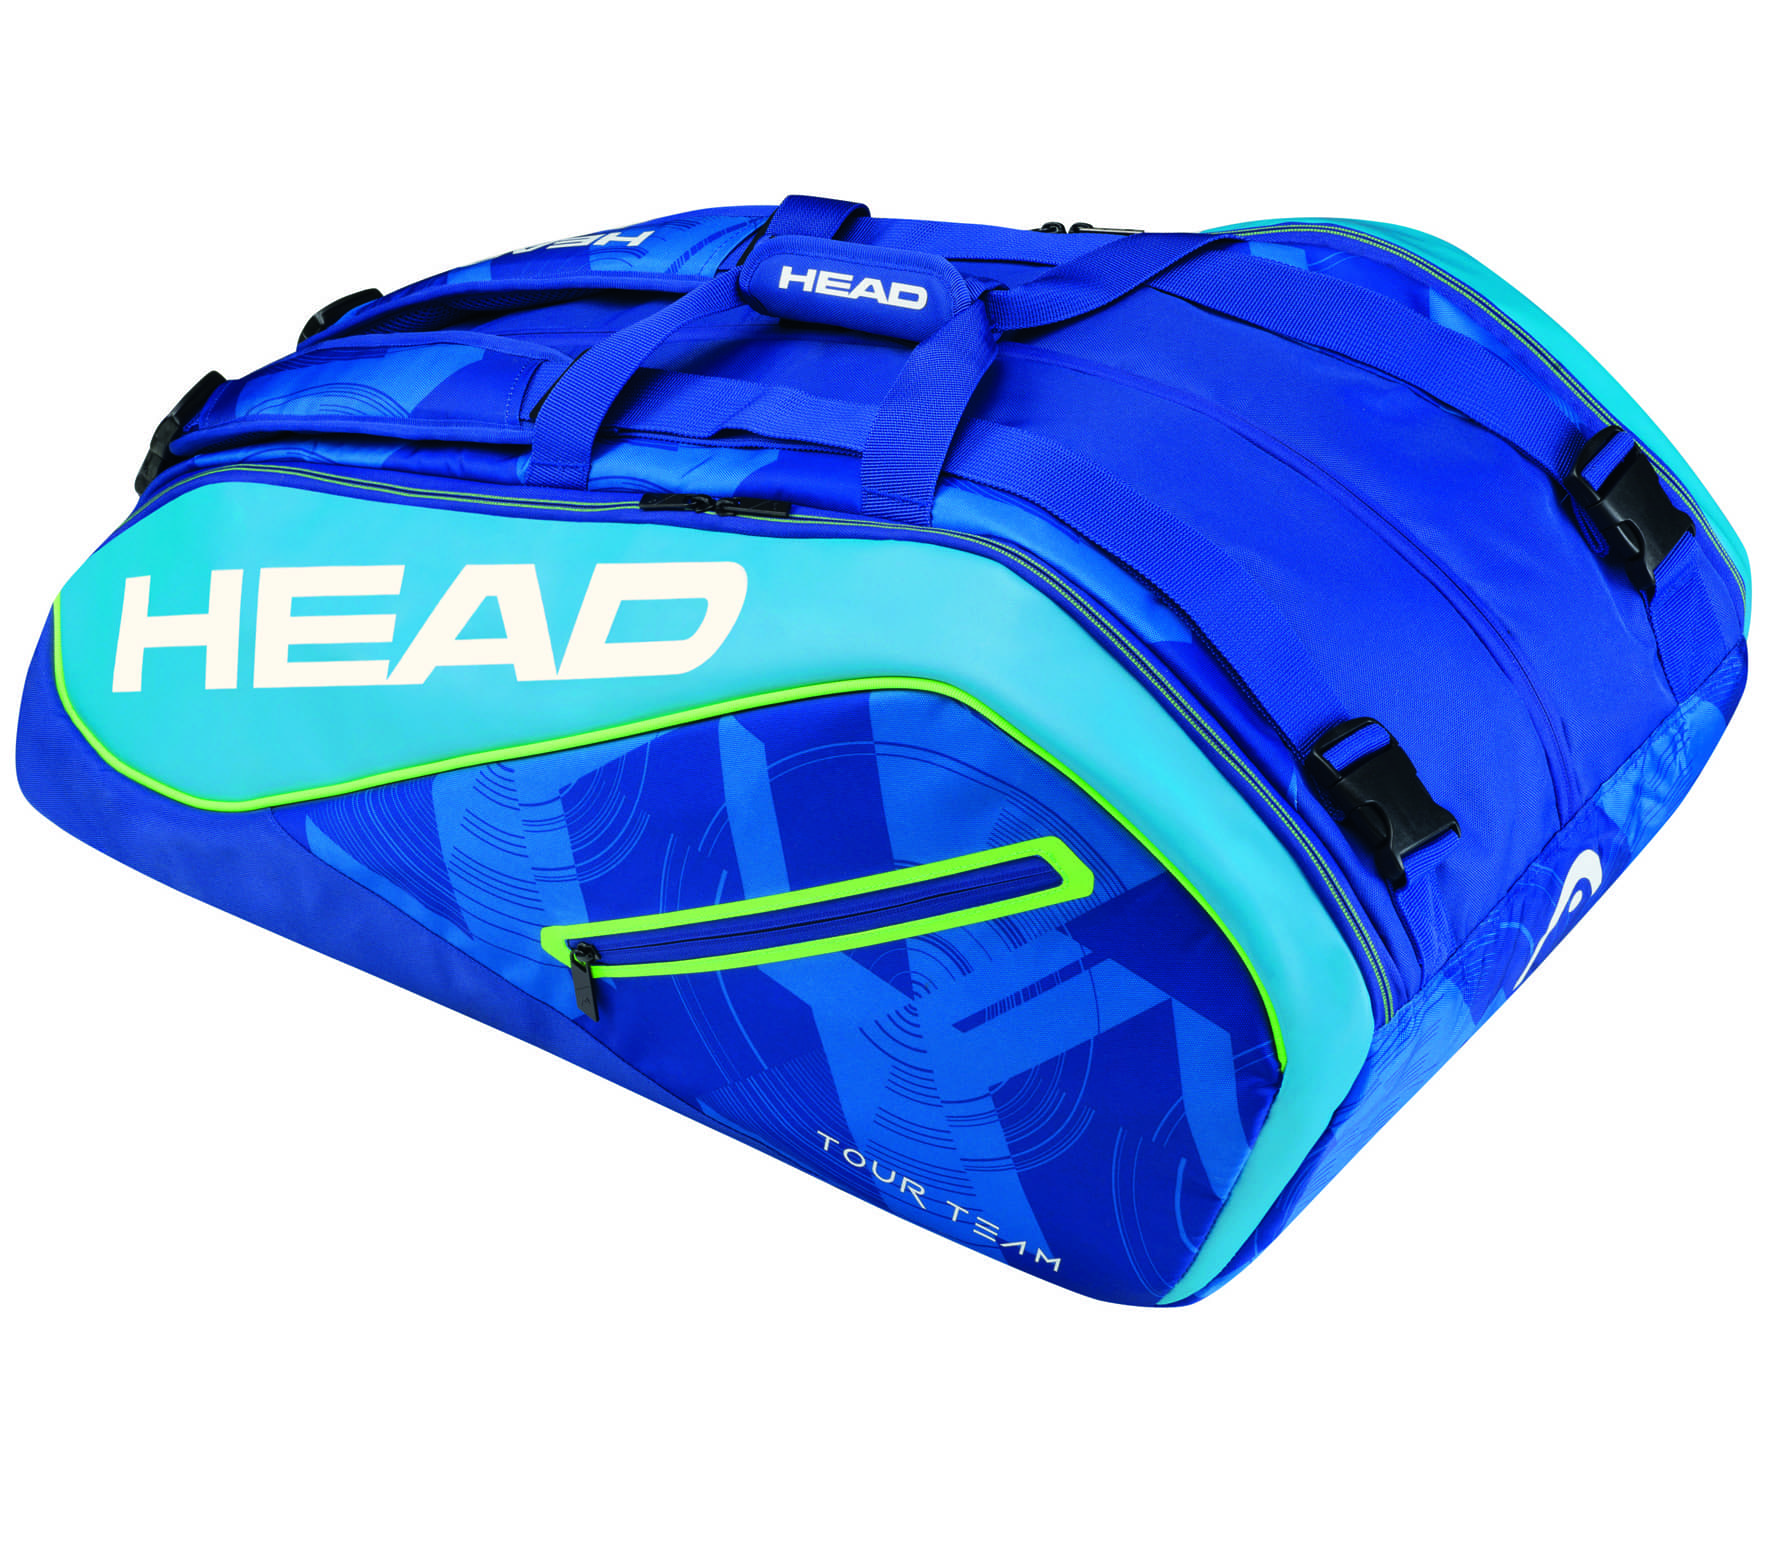 Head - Tour Team 12R Monstercombi tennis bag (light blue/dark blue)